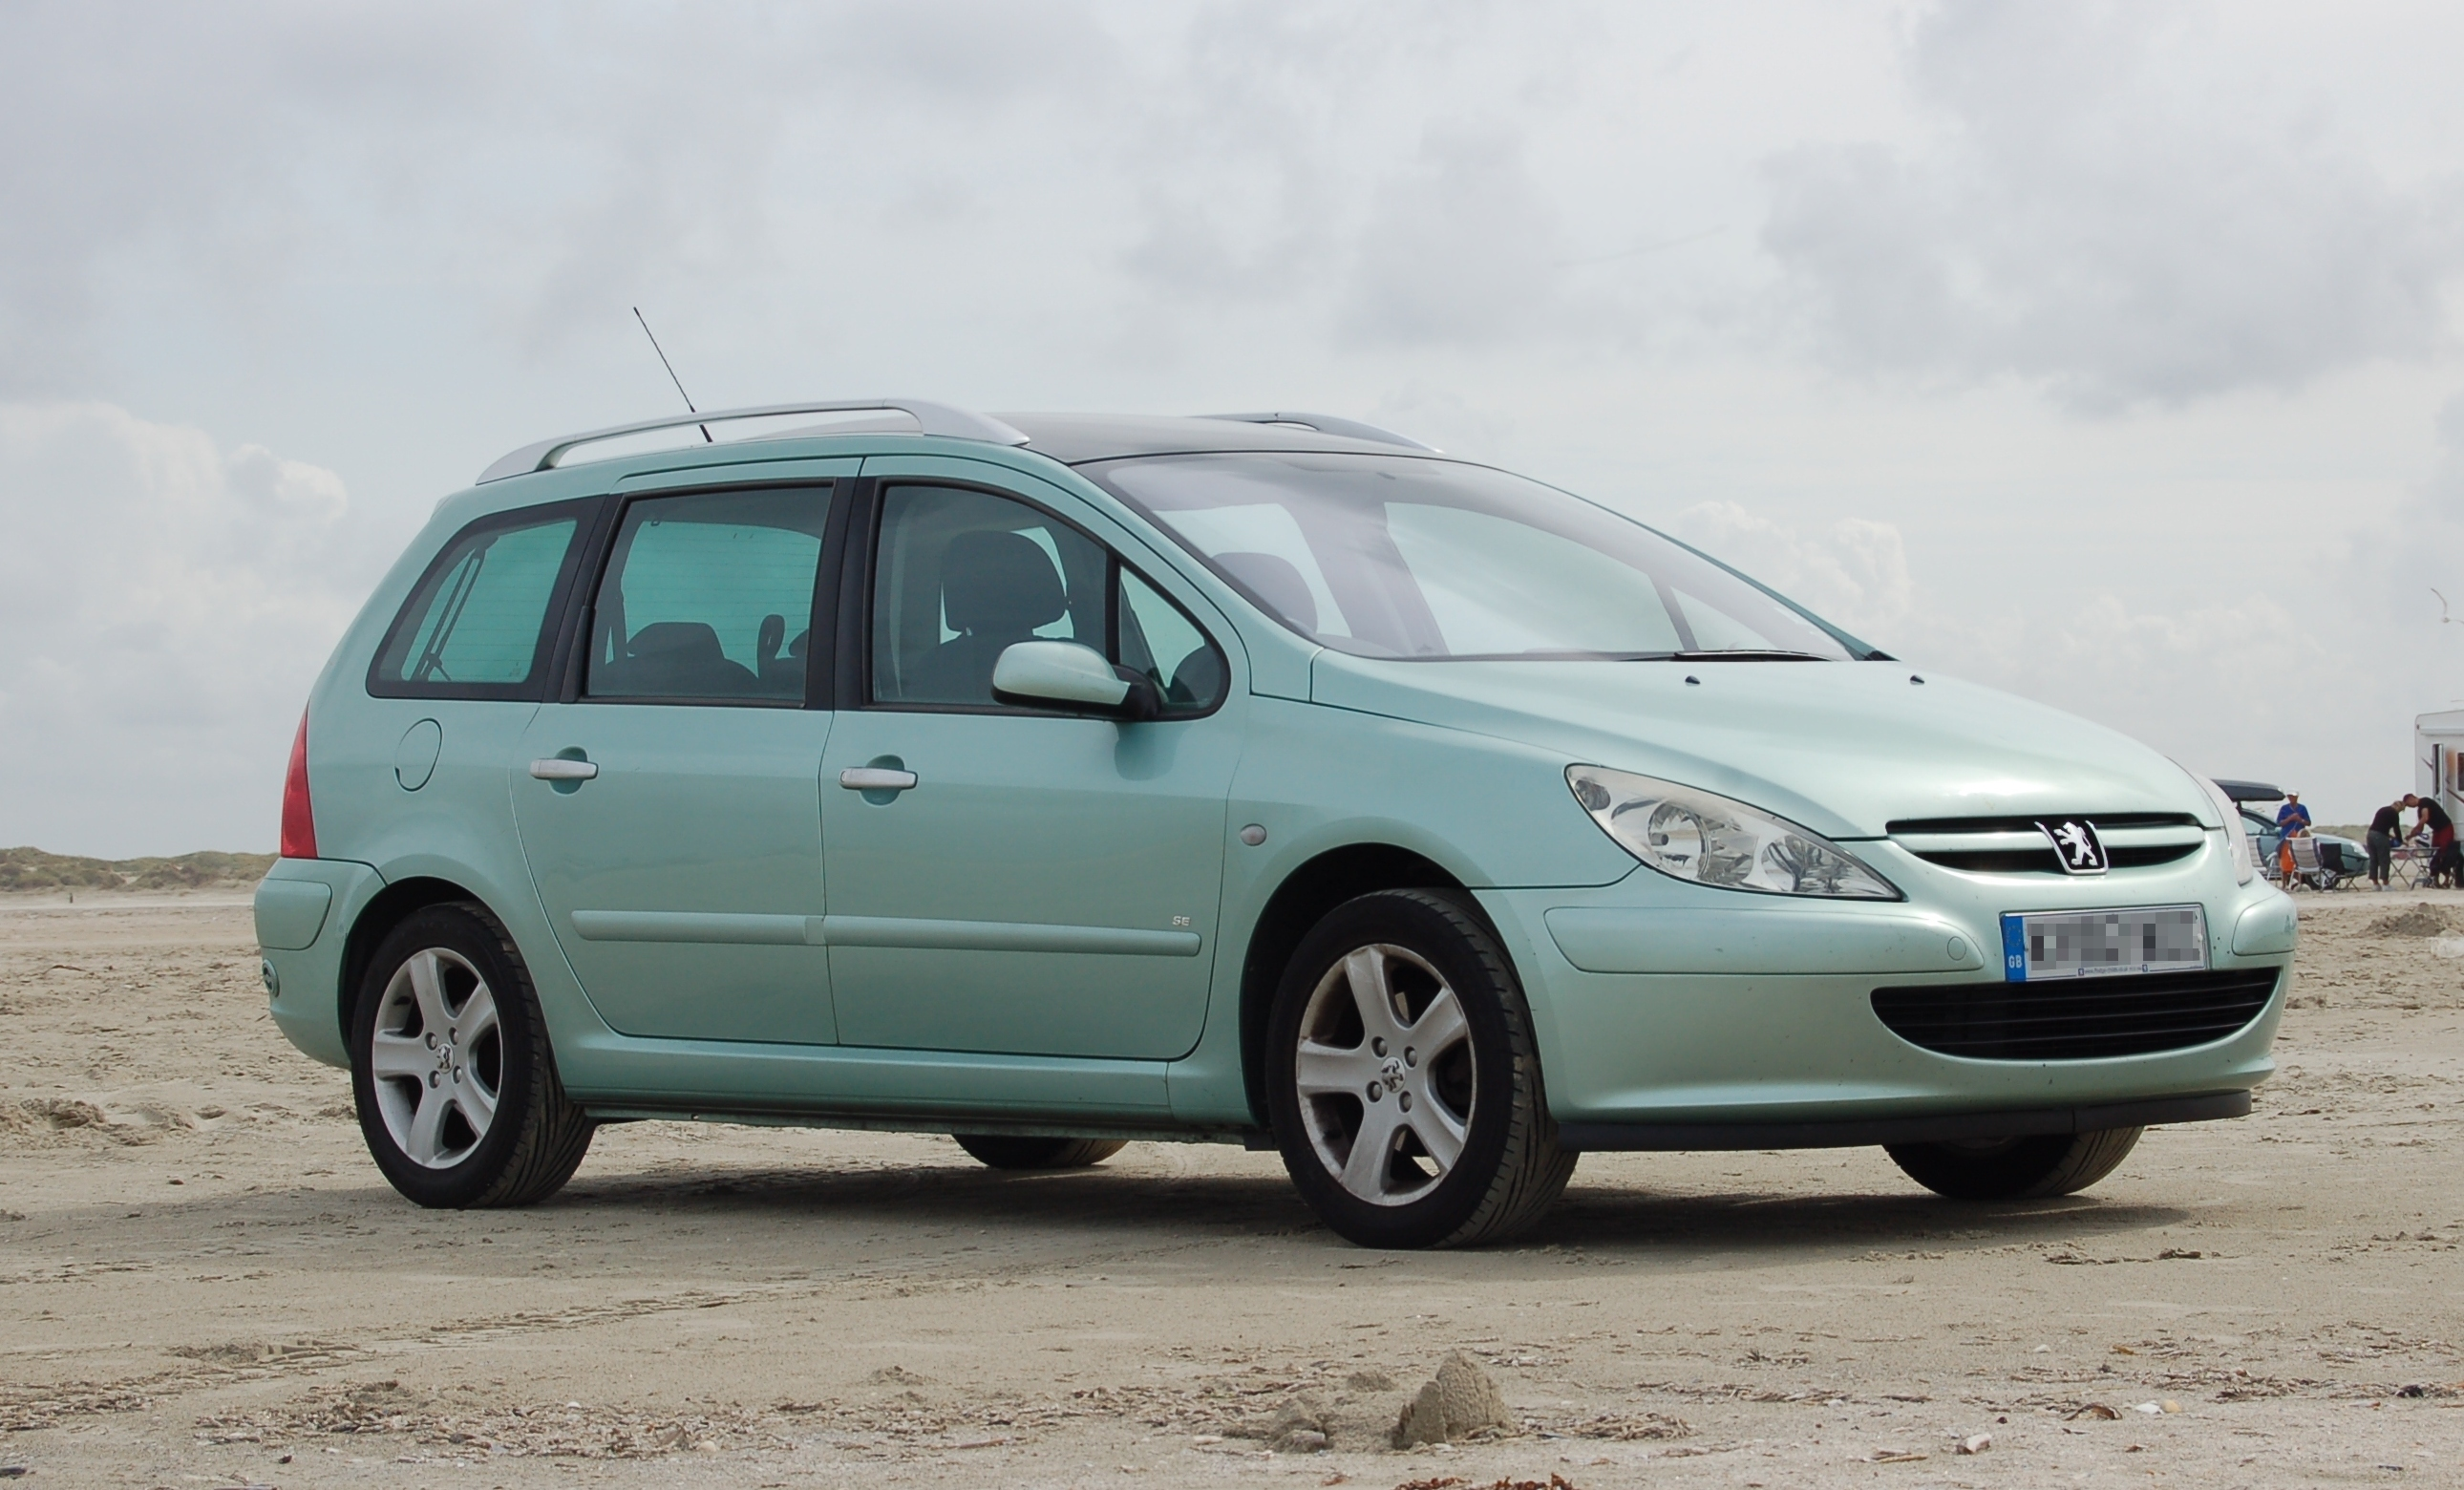 peugeot 307 station wagon 2014 pictures #1